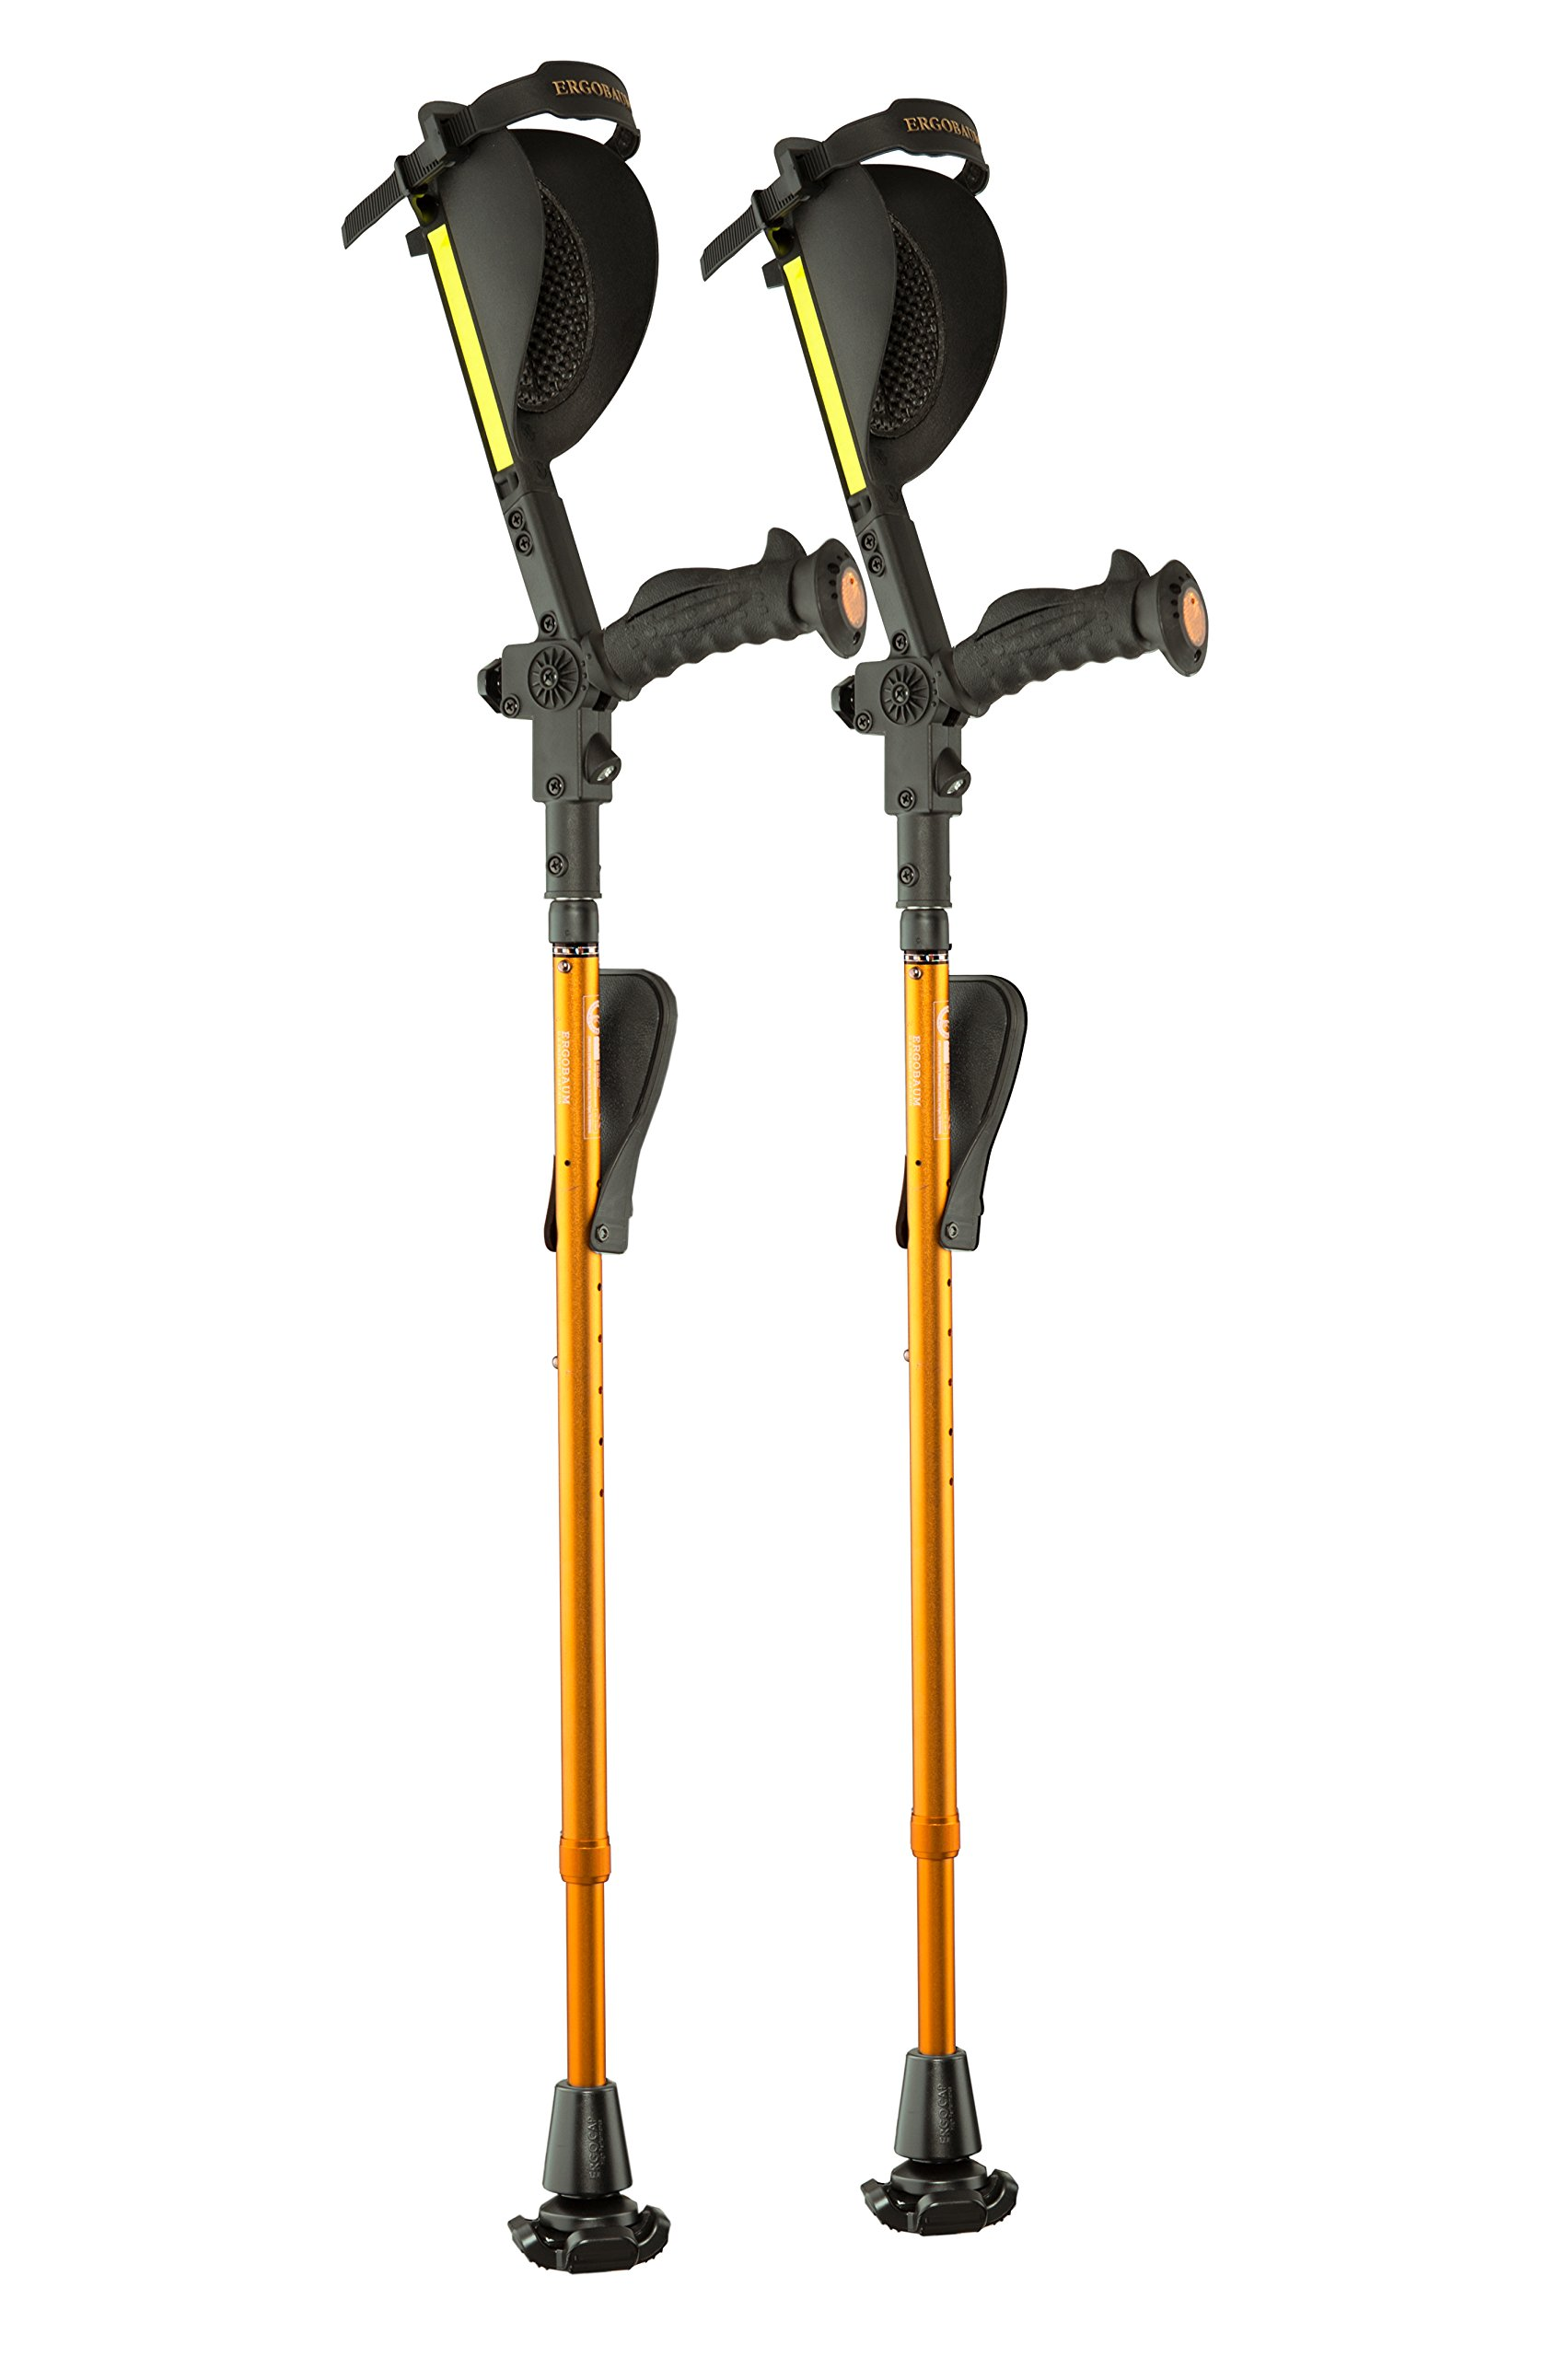 Ergobaum® Prime 7TH Generation By Ergoactives. 1 Pair (2 Units) of Ergonomic Forearm Crutches - Adult 5' - 6'6'' Adjustable. (Gold)